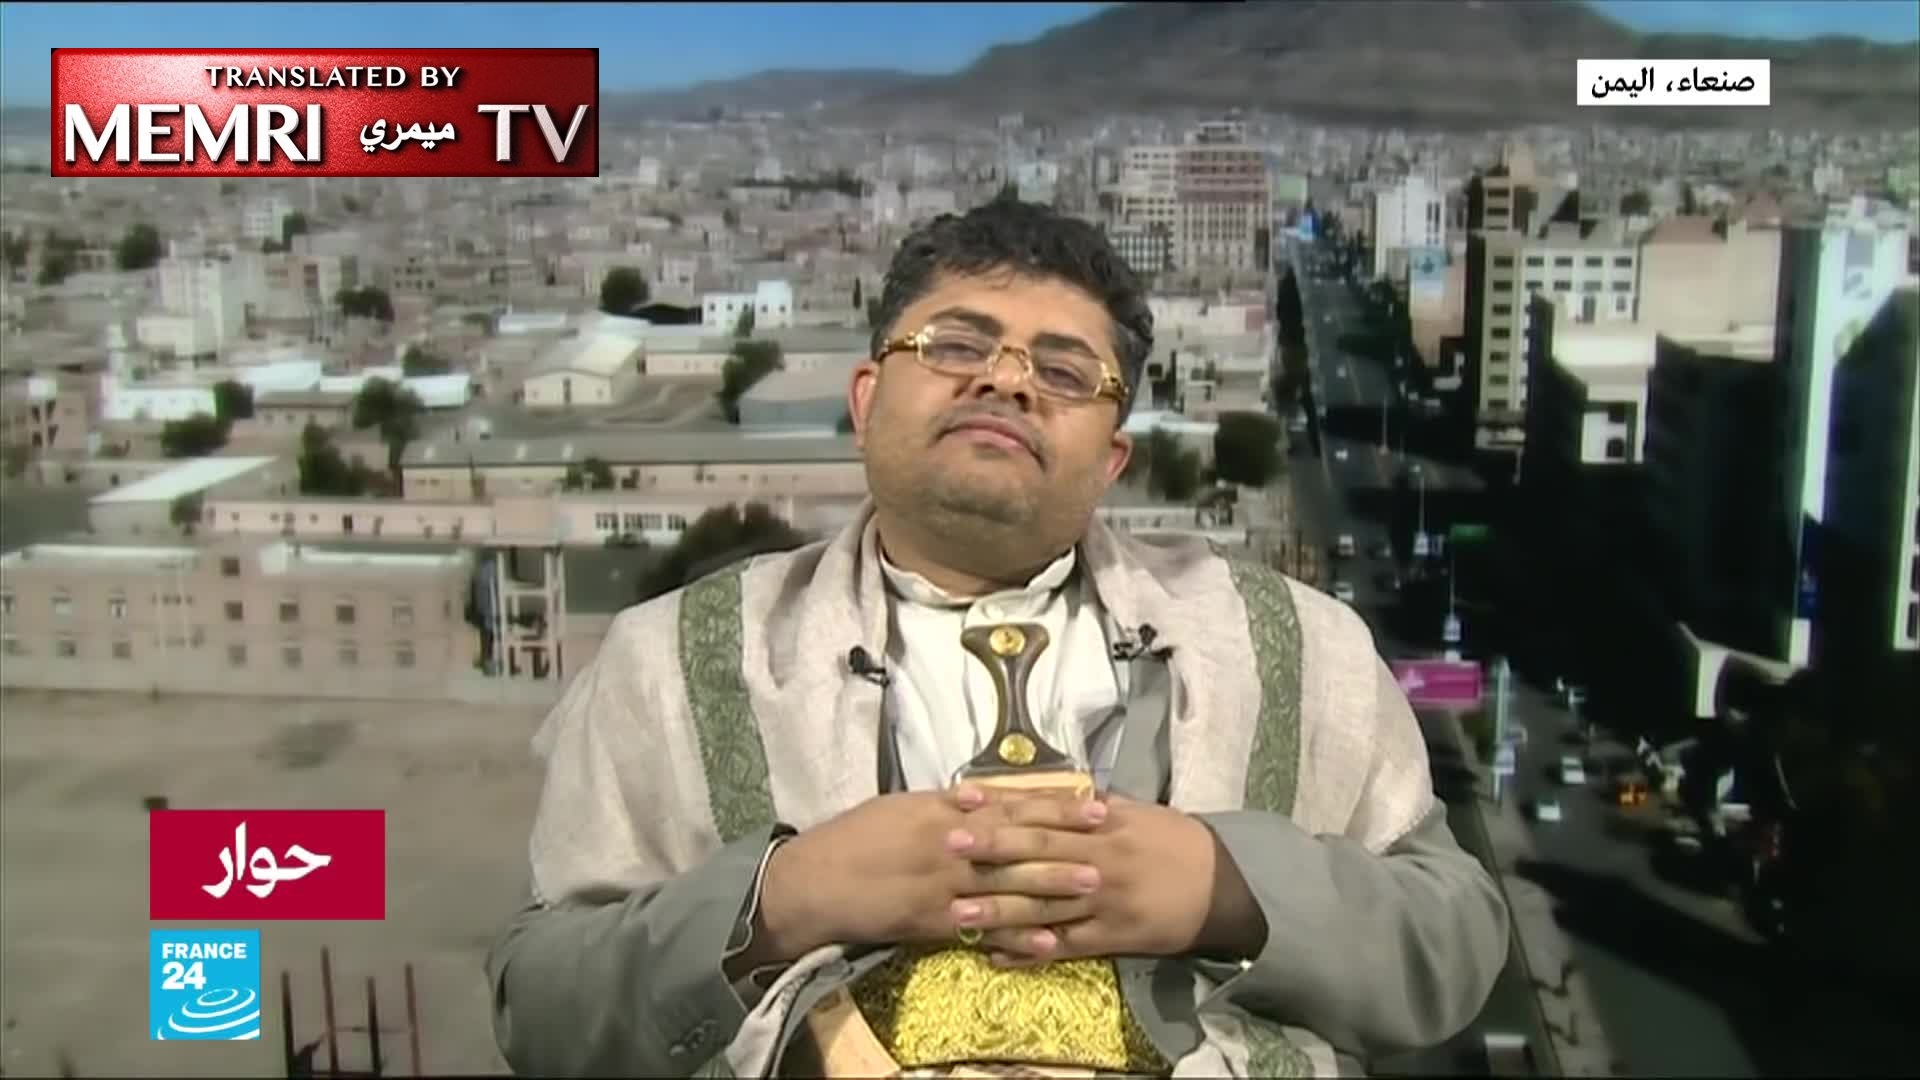 Houthi Leader Mohammed Ali Al-Houthi: International Aid Should Come in Cash Rather Than Foods Yemenis Don't Like